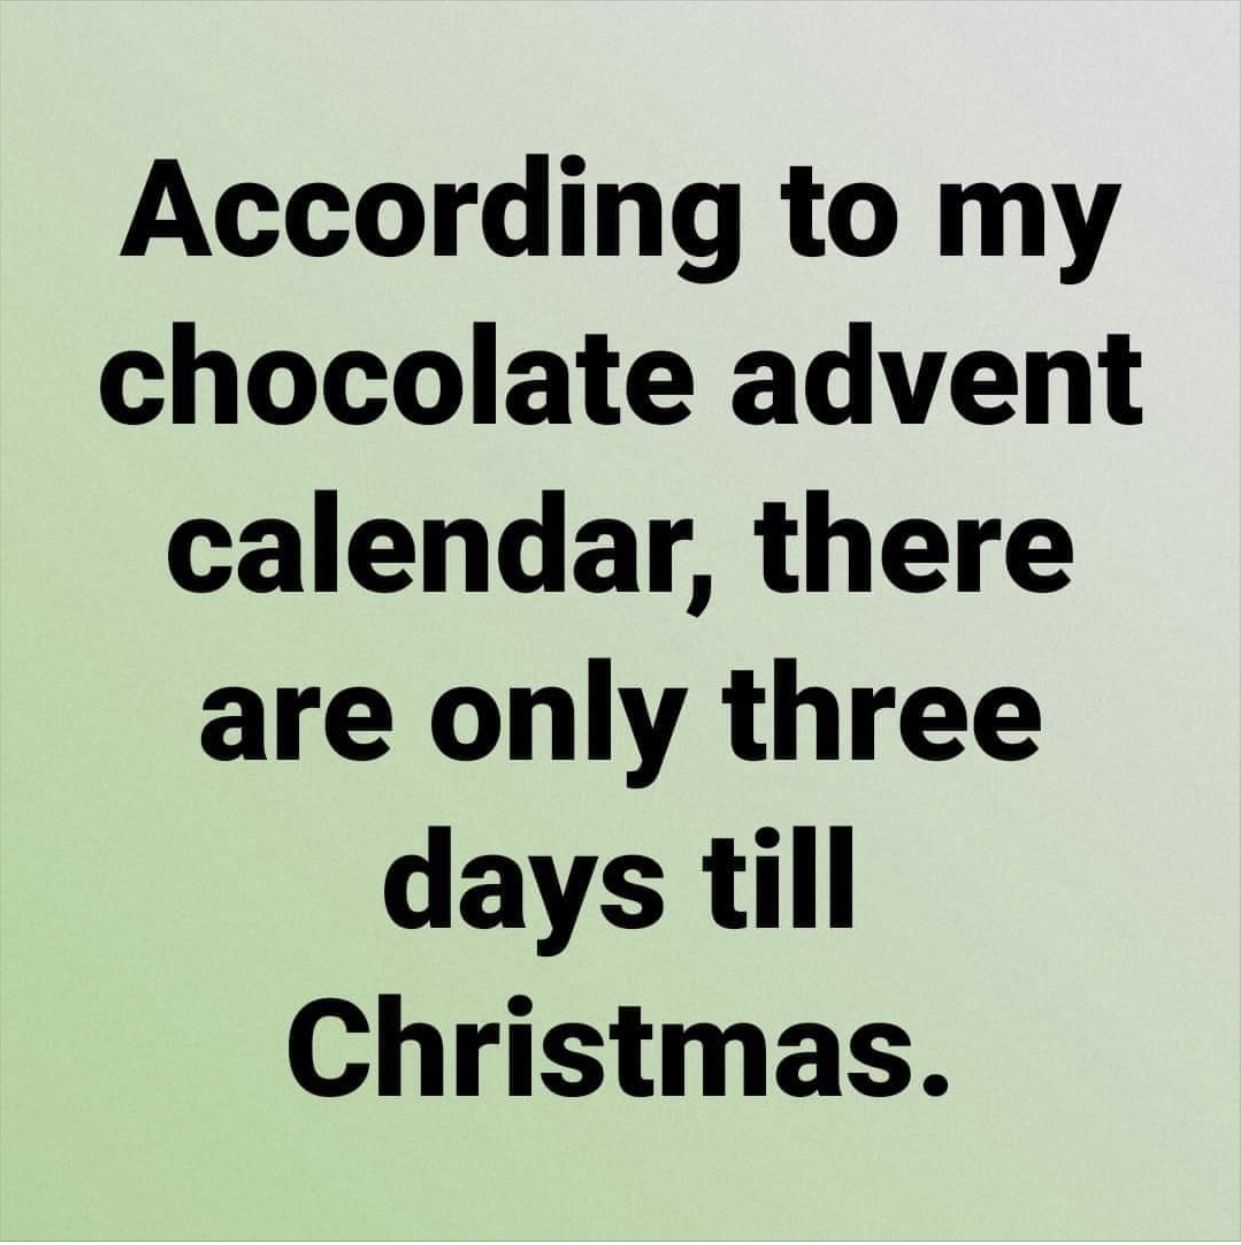 Pin by Lori Hutson on Funny quotes in 2020 Chocolate